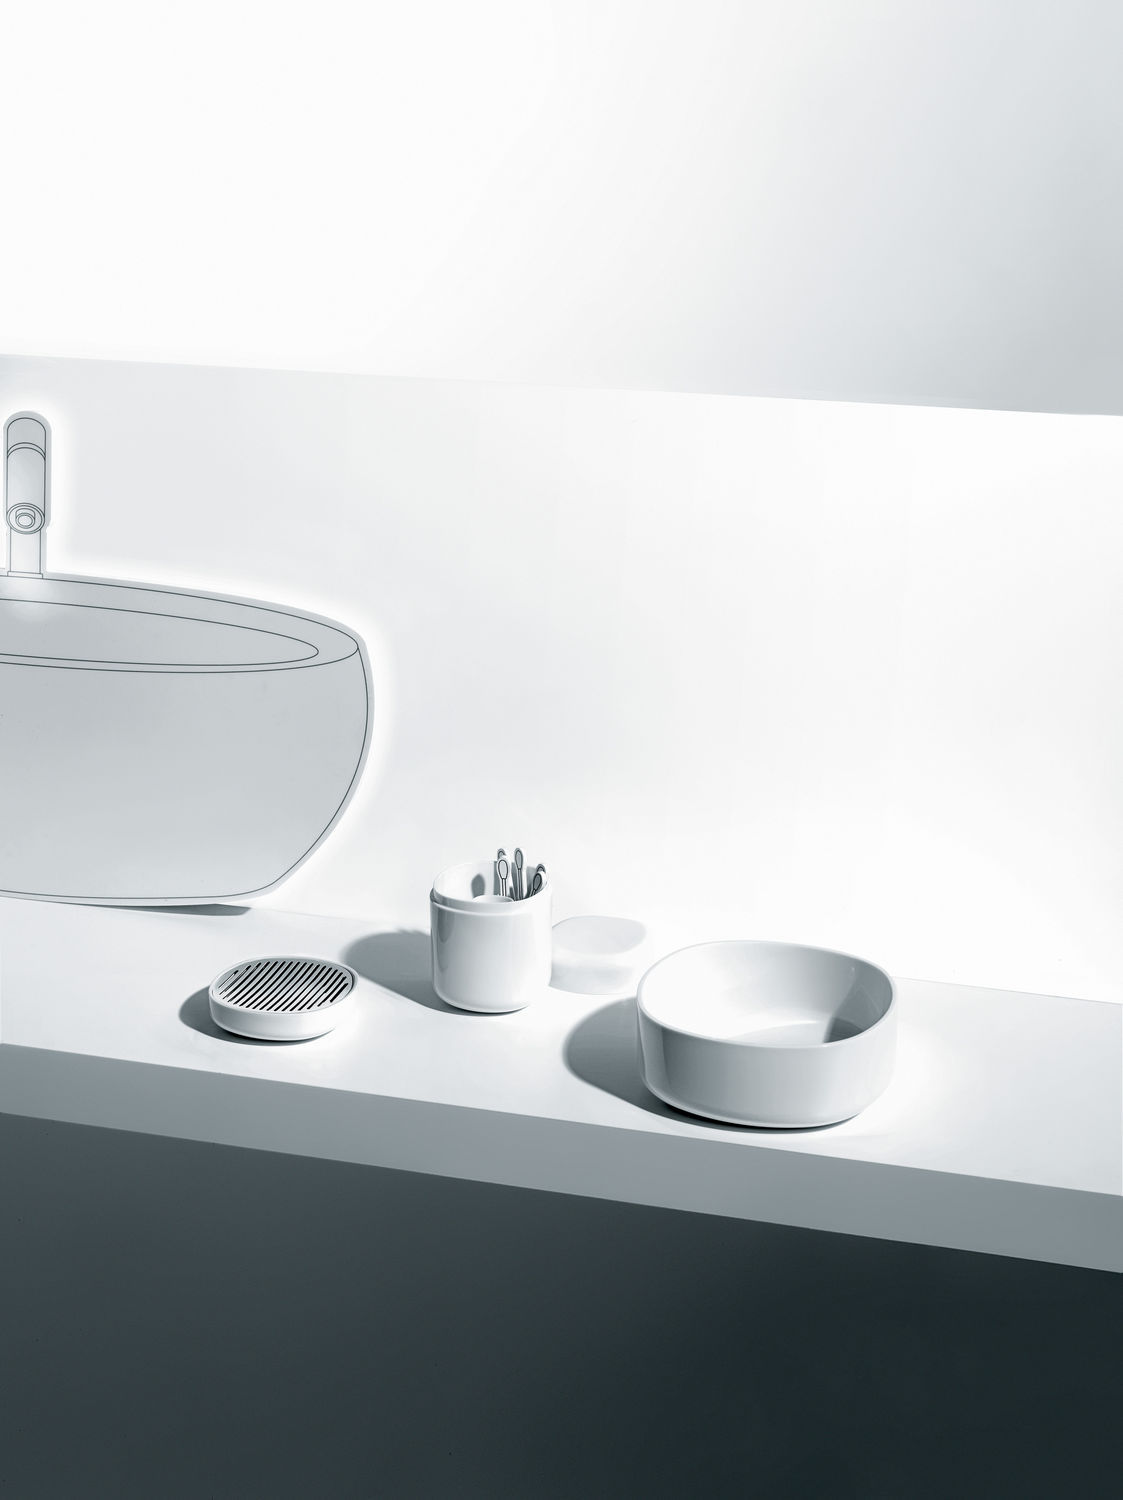 Stainless steel soap dish / by Piero Lissoni - BIRILLO - ALESSI S.P.A.